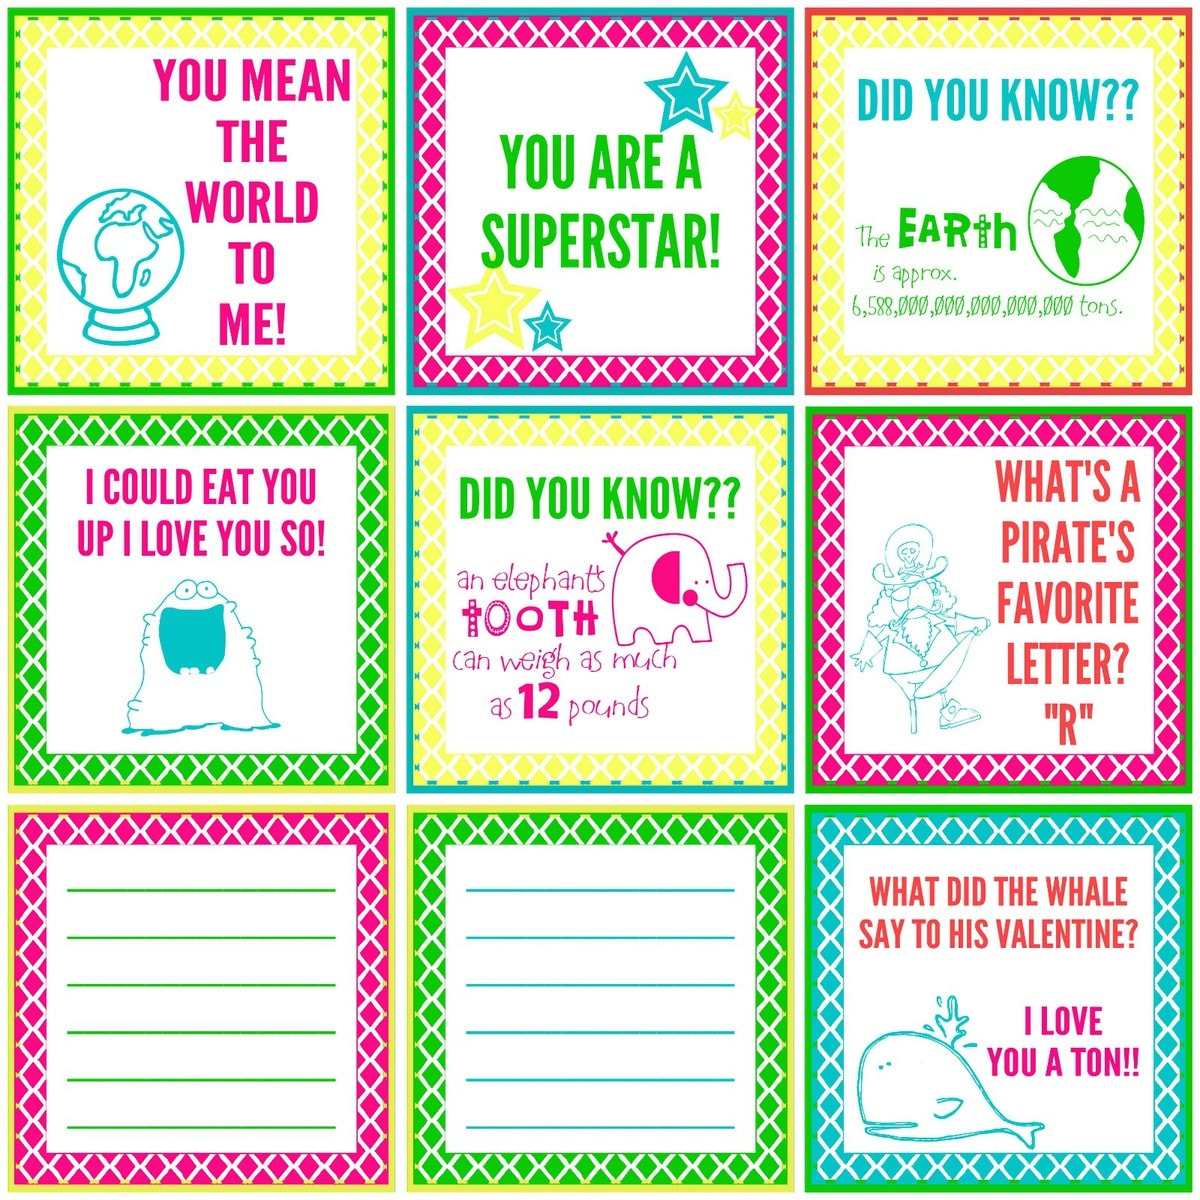 FREE Lunch Box Notes and Jokes on { lilluna.com } The kids will love getting these little surprises each day!